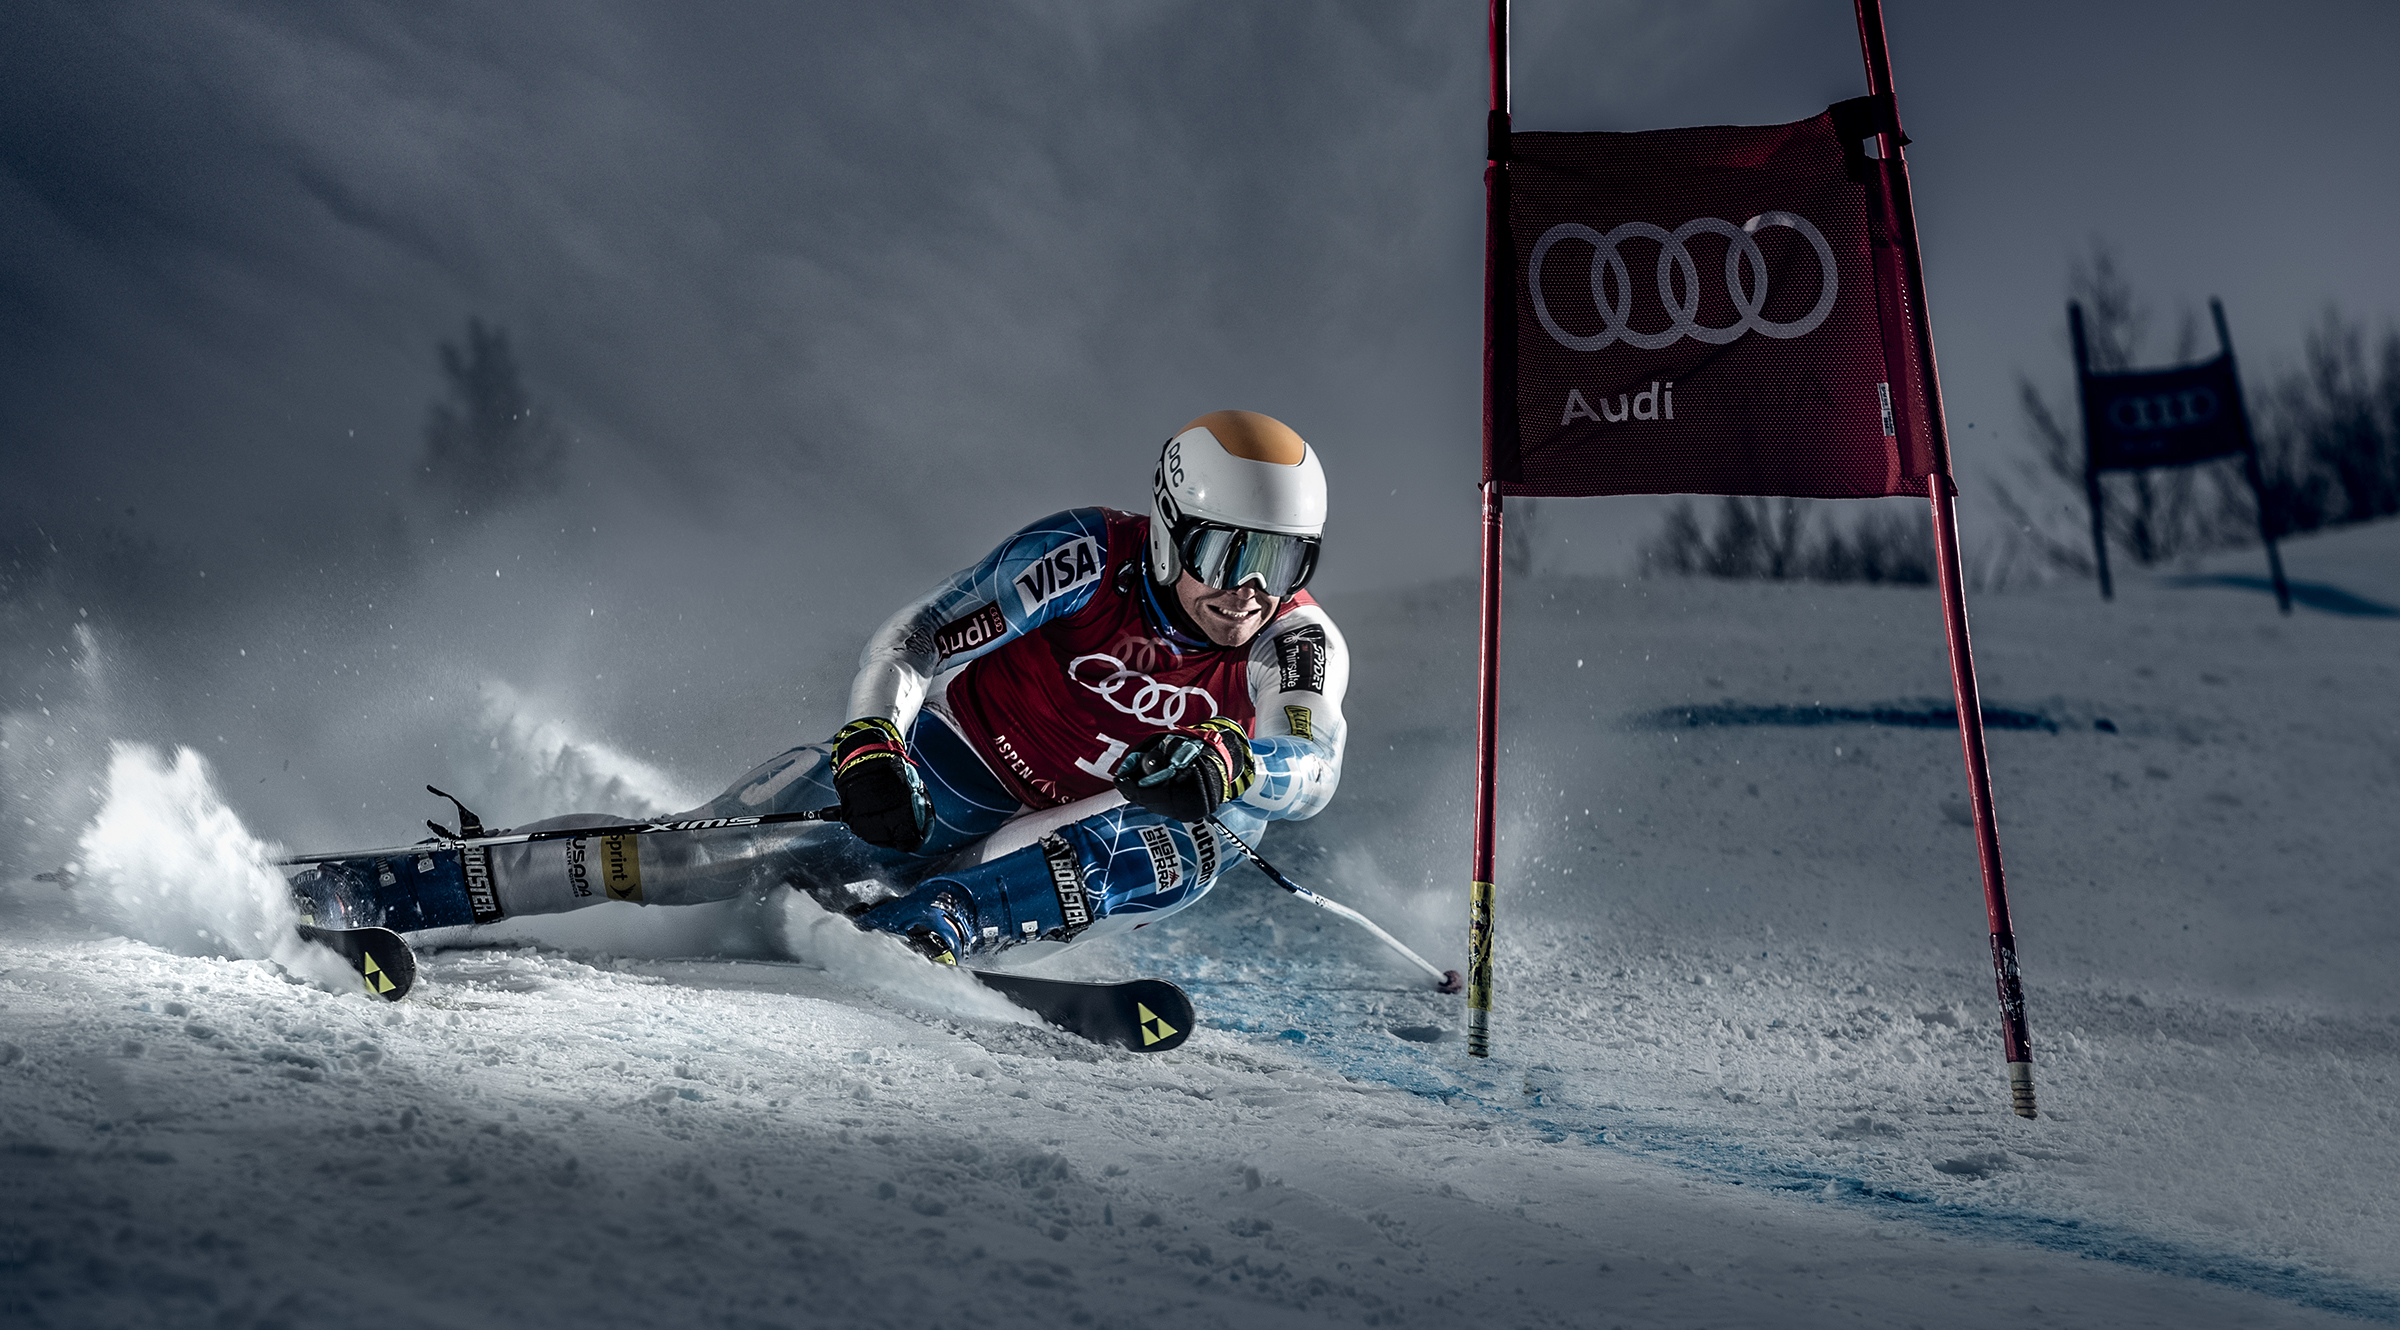 Photographing Ski Racers